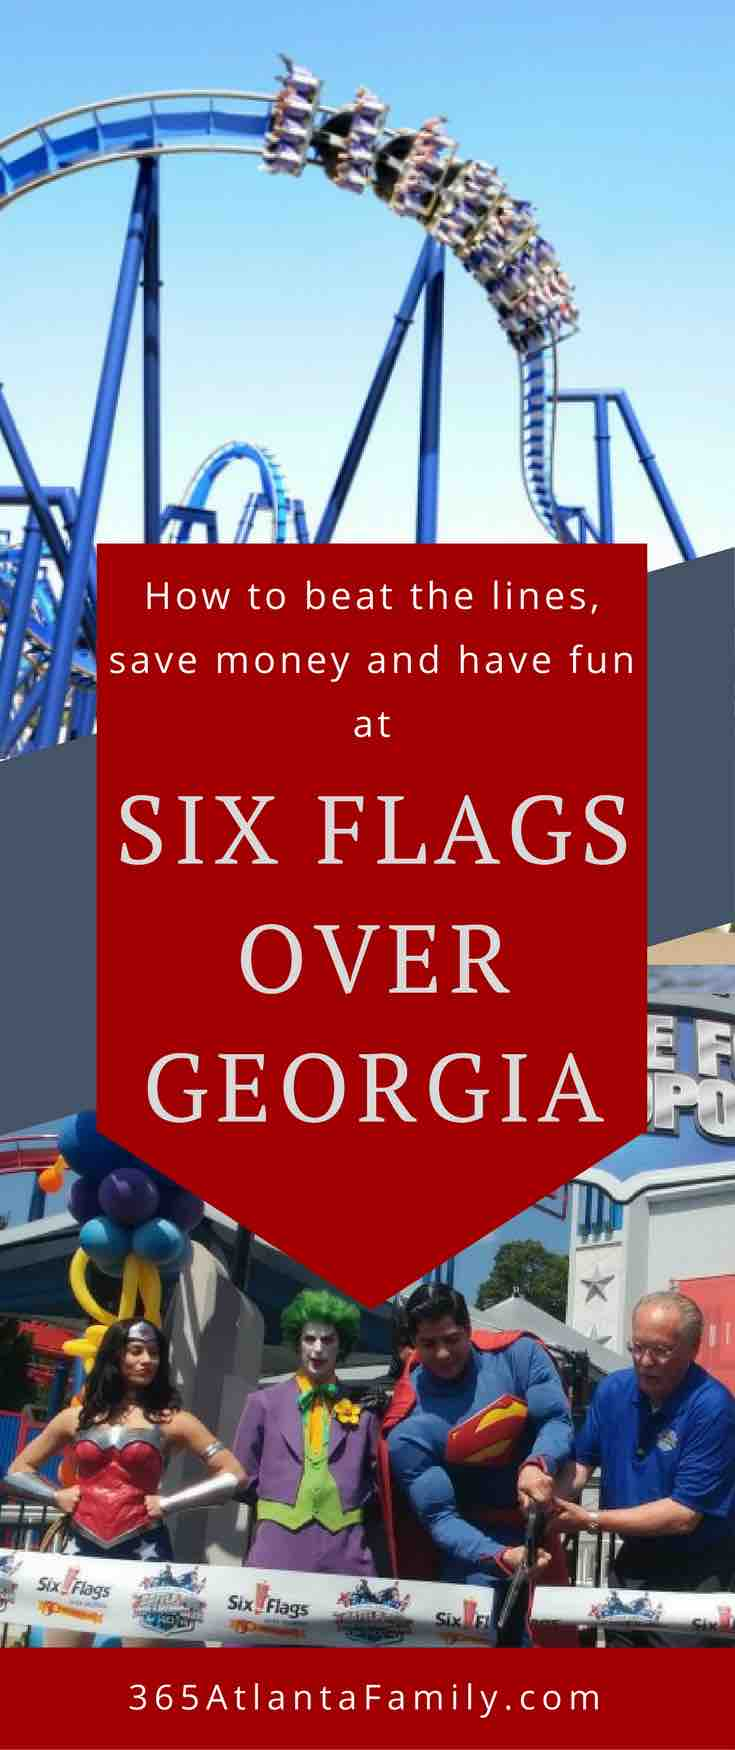 Before you head to Six Flags Over Georgia, you MUST read this post on how to beat the lines, save money and get the best experience ever at this amusement park outside Atlanta.